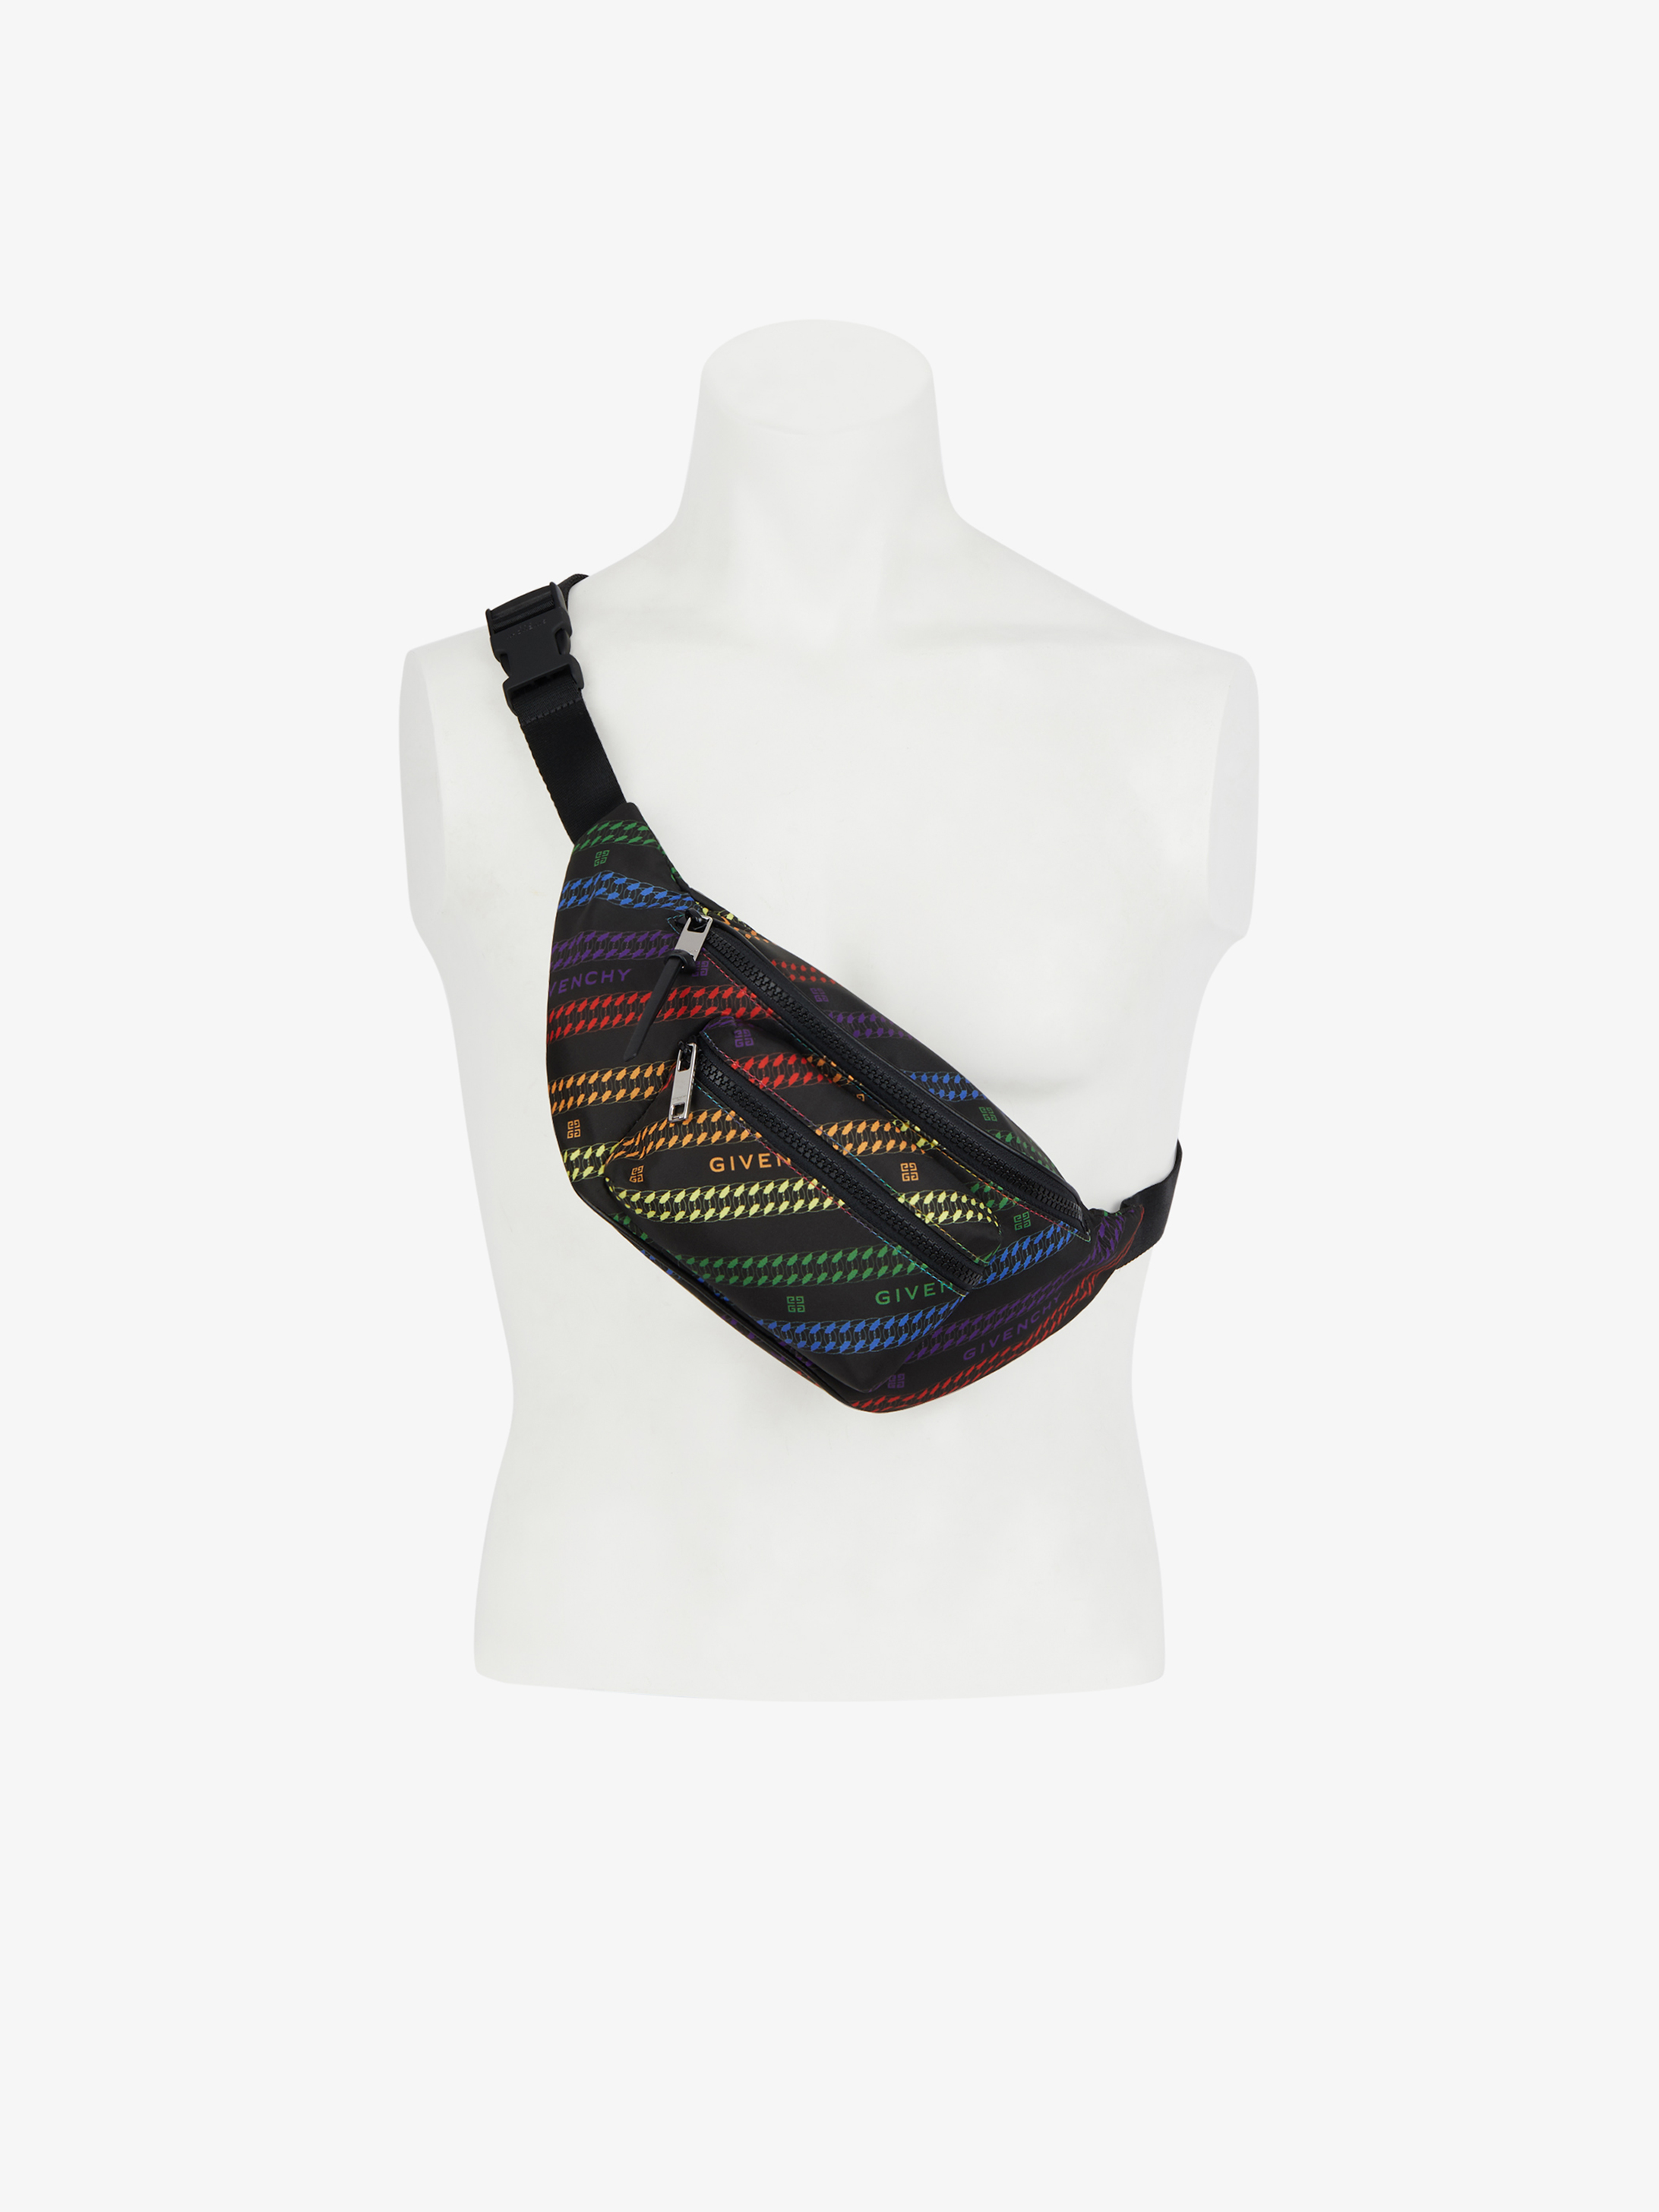 GIVENCHY multicolored bum bag in nylon